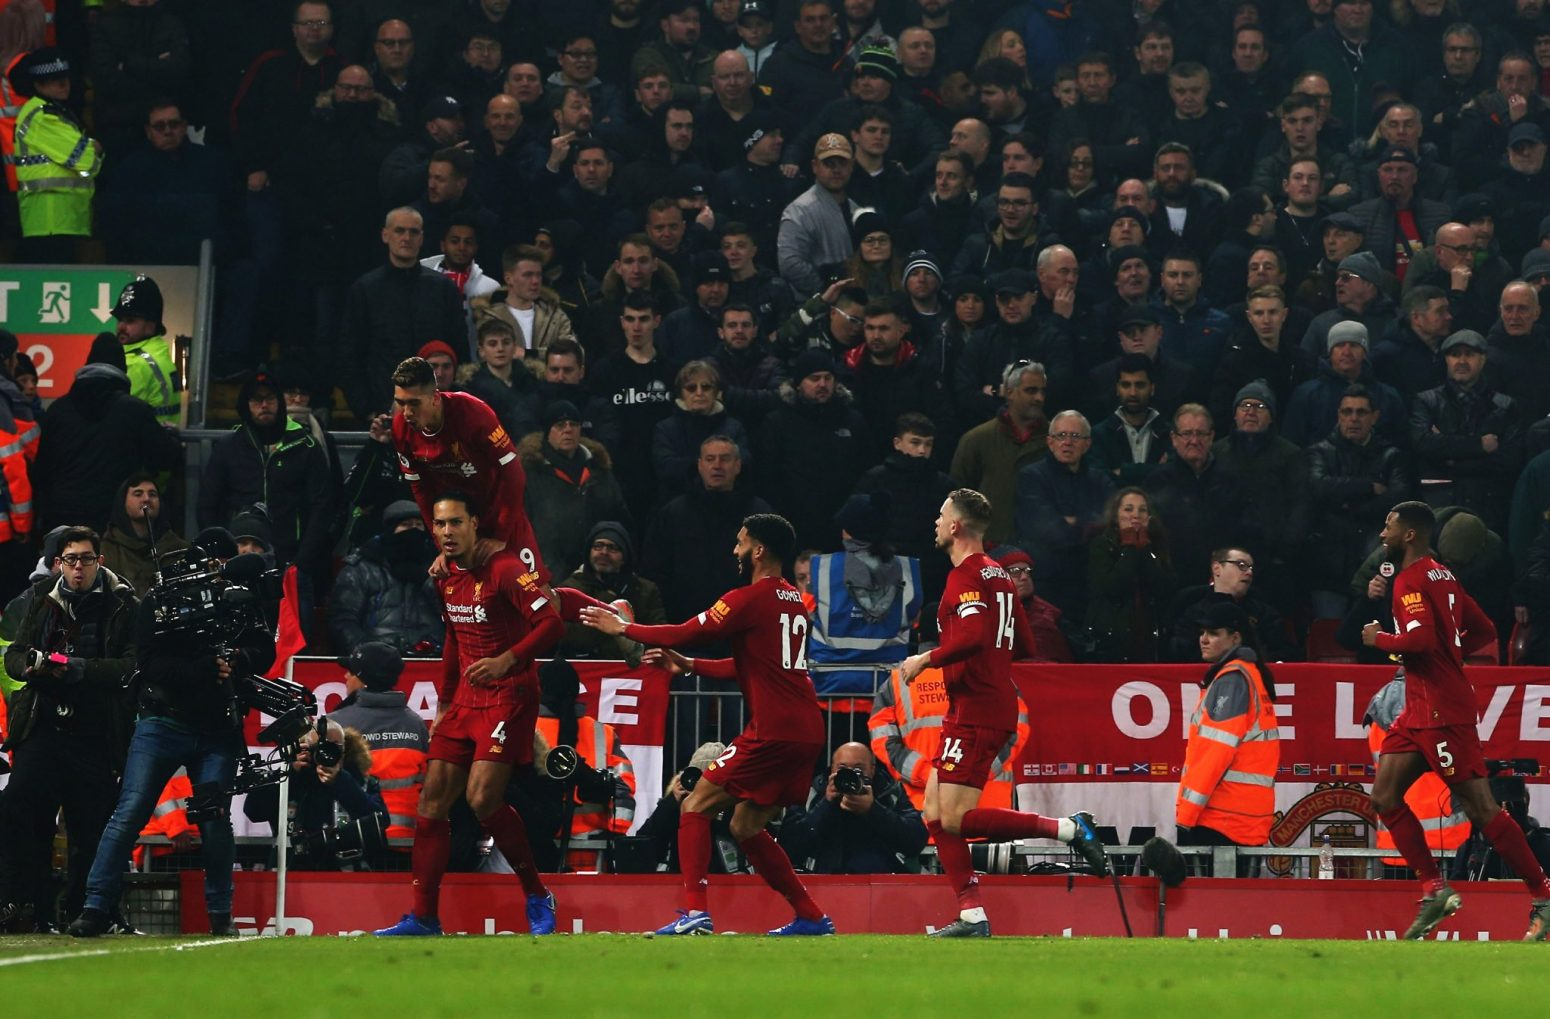 Liverpool 2-0 Man United – As it happened & reaction